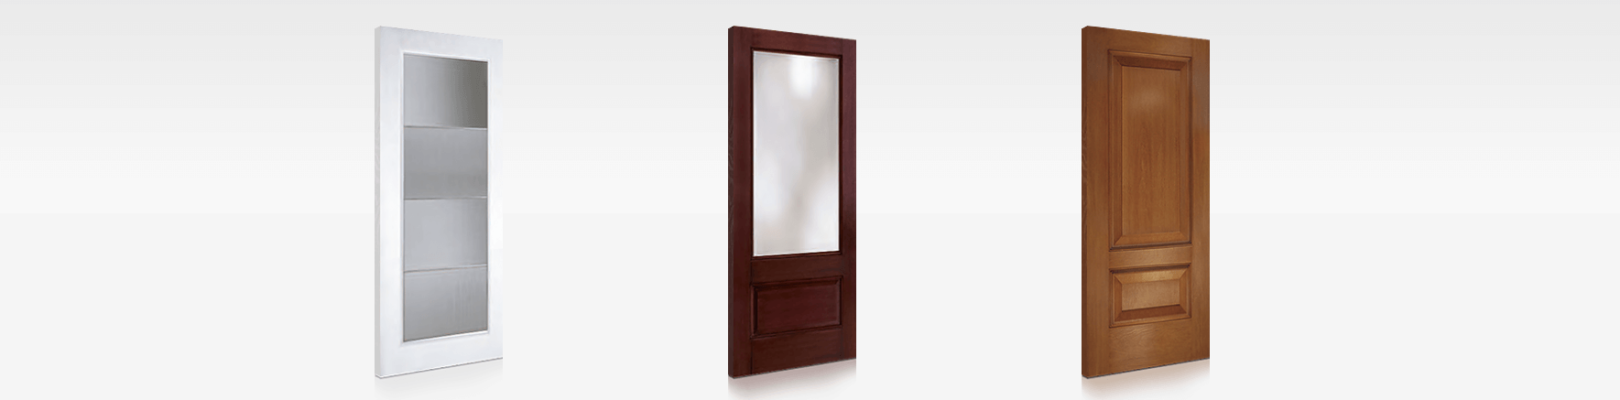 Fiberglass entry doors cossins replacement windows calgary Exterior doors installation calgary